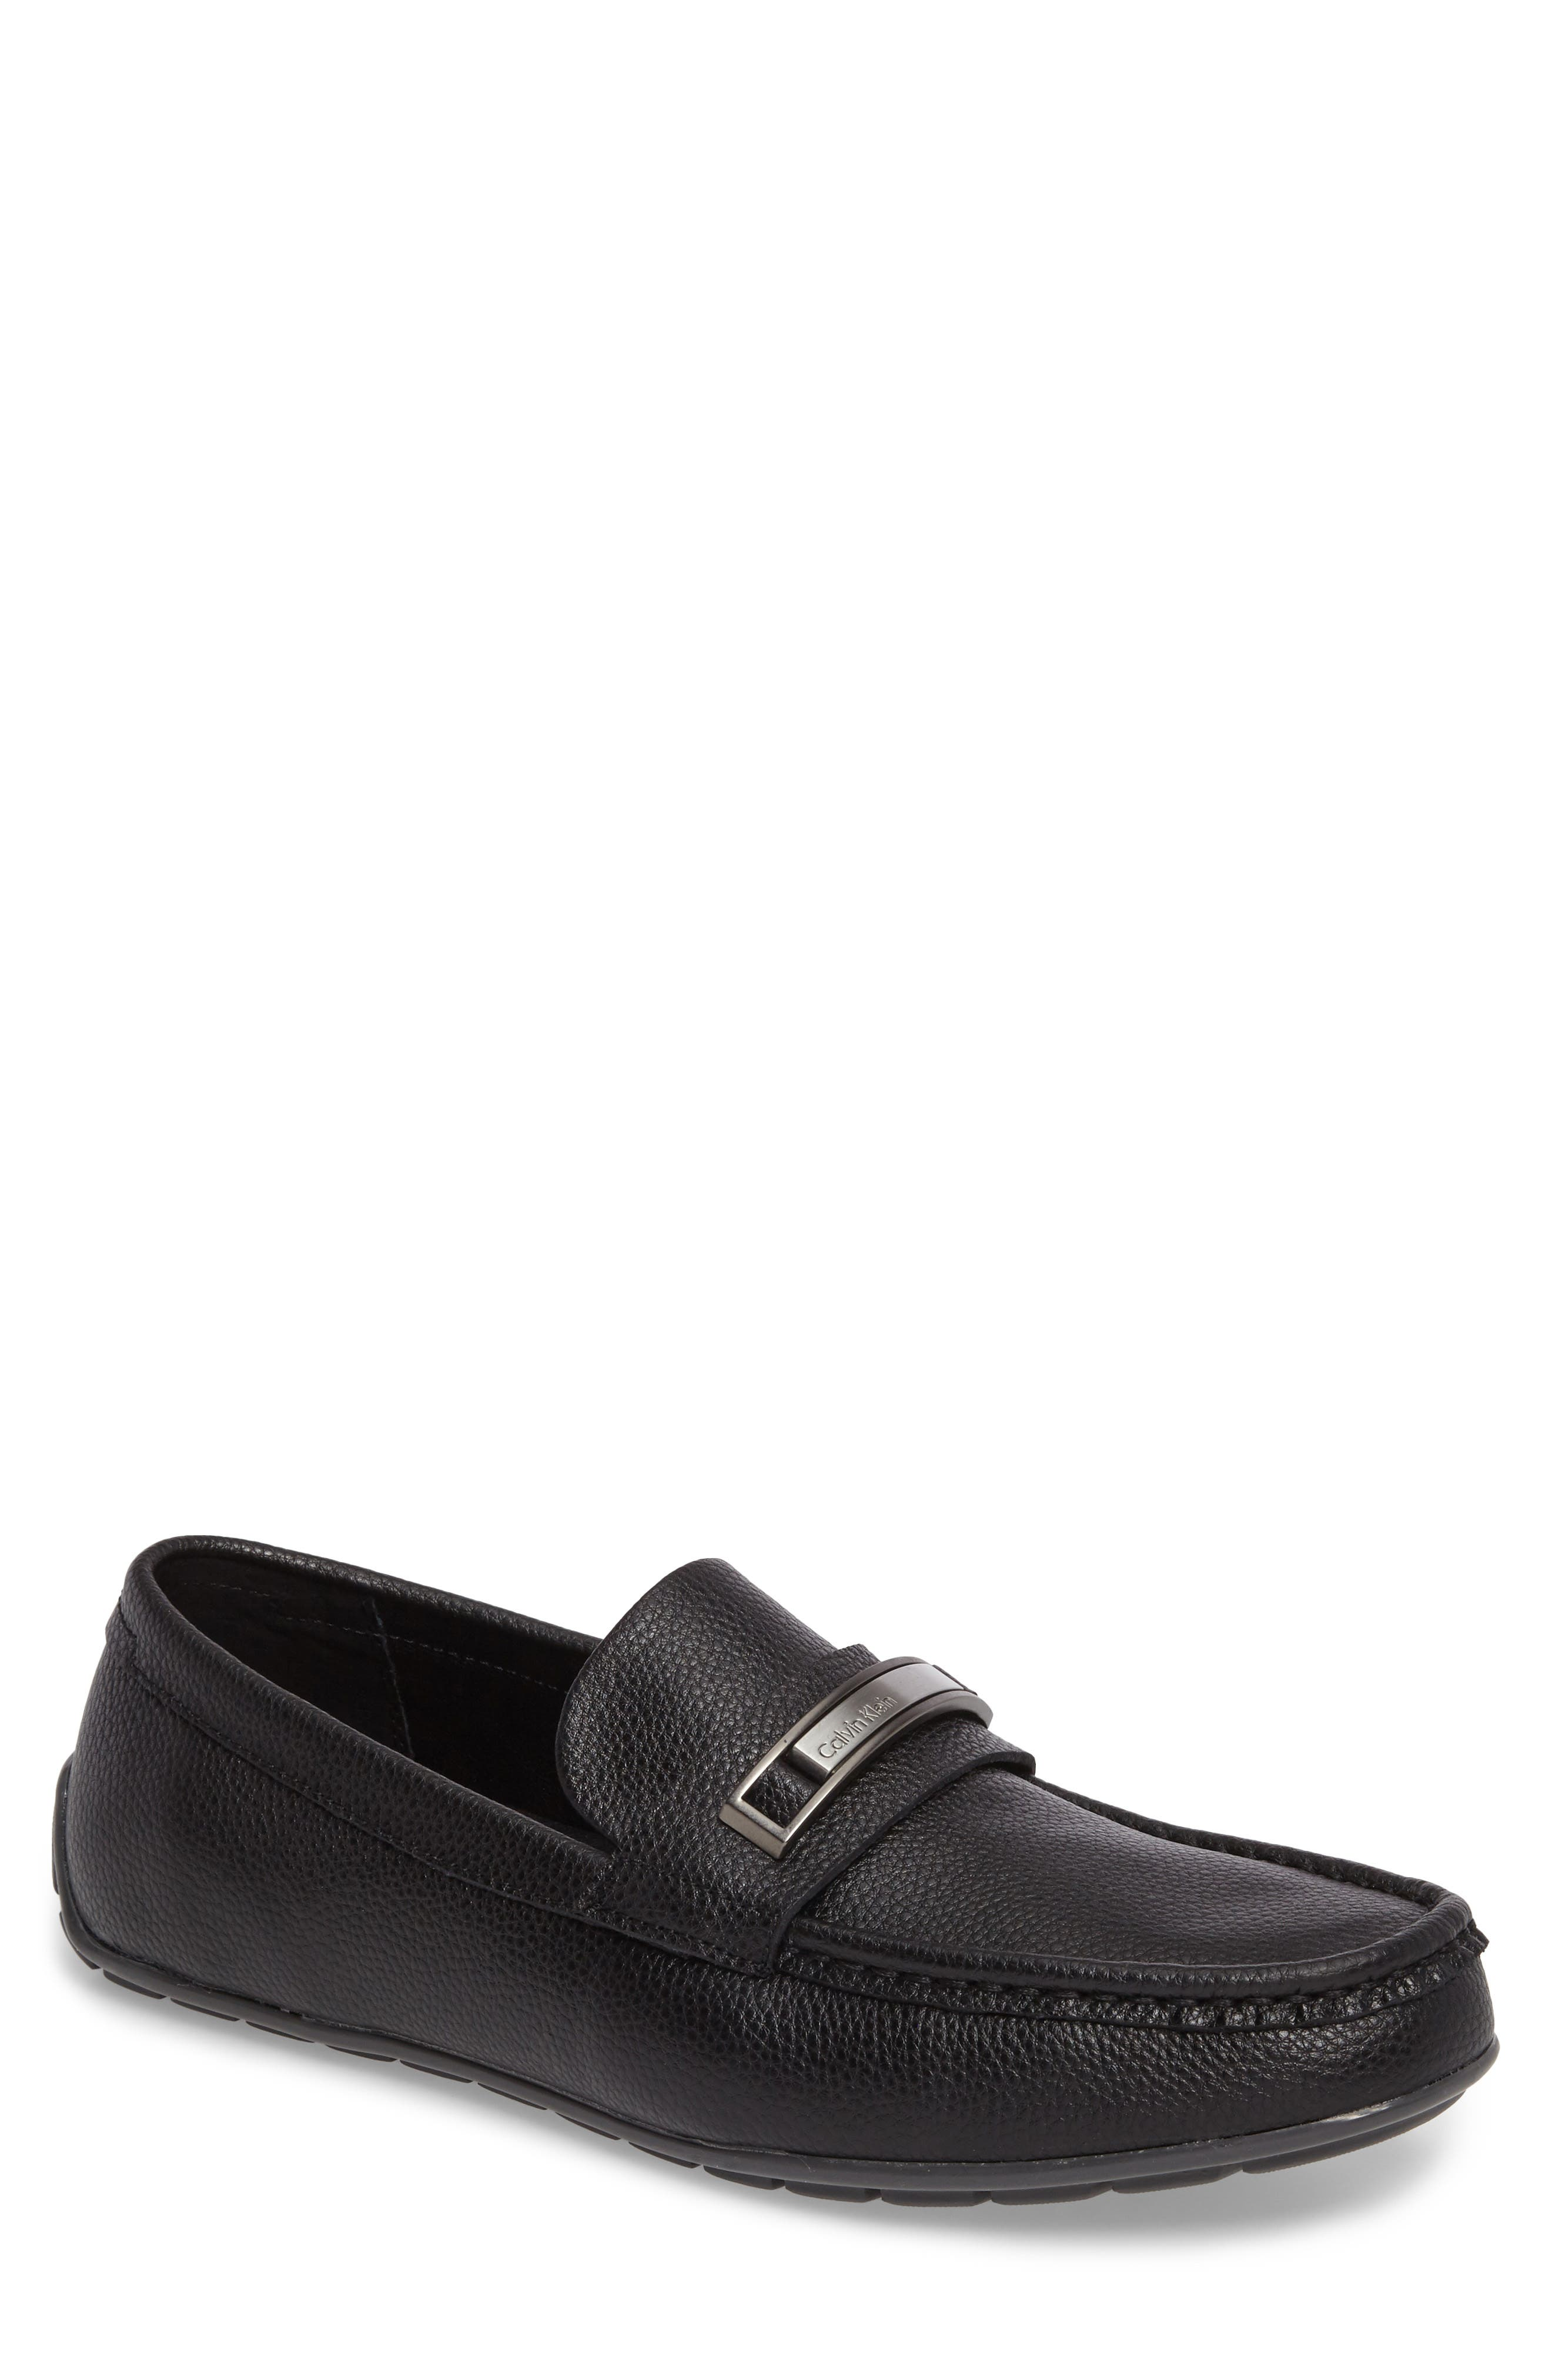 Irving Driving Loafer,                             Main thumbnail 1, color,                             001